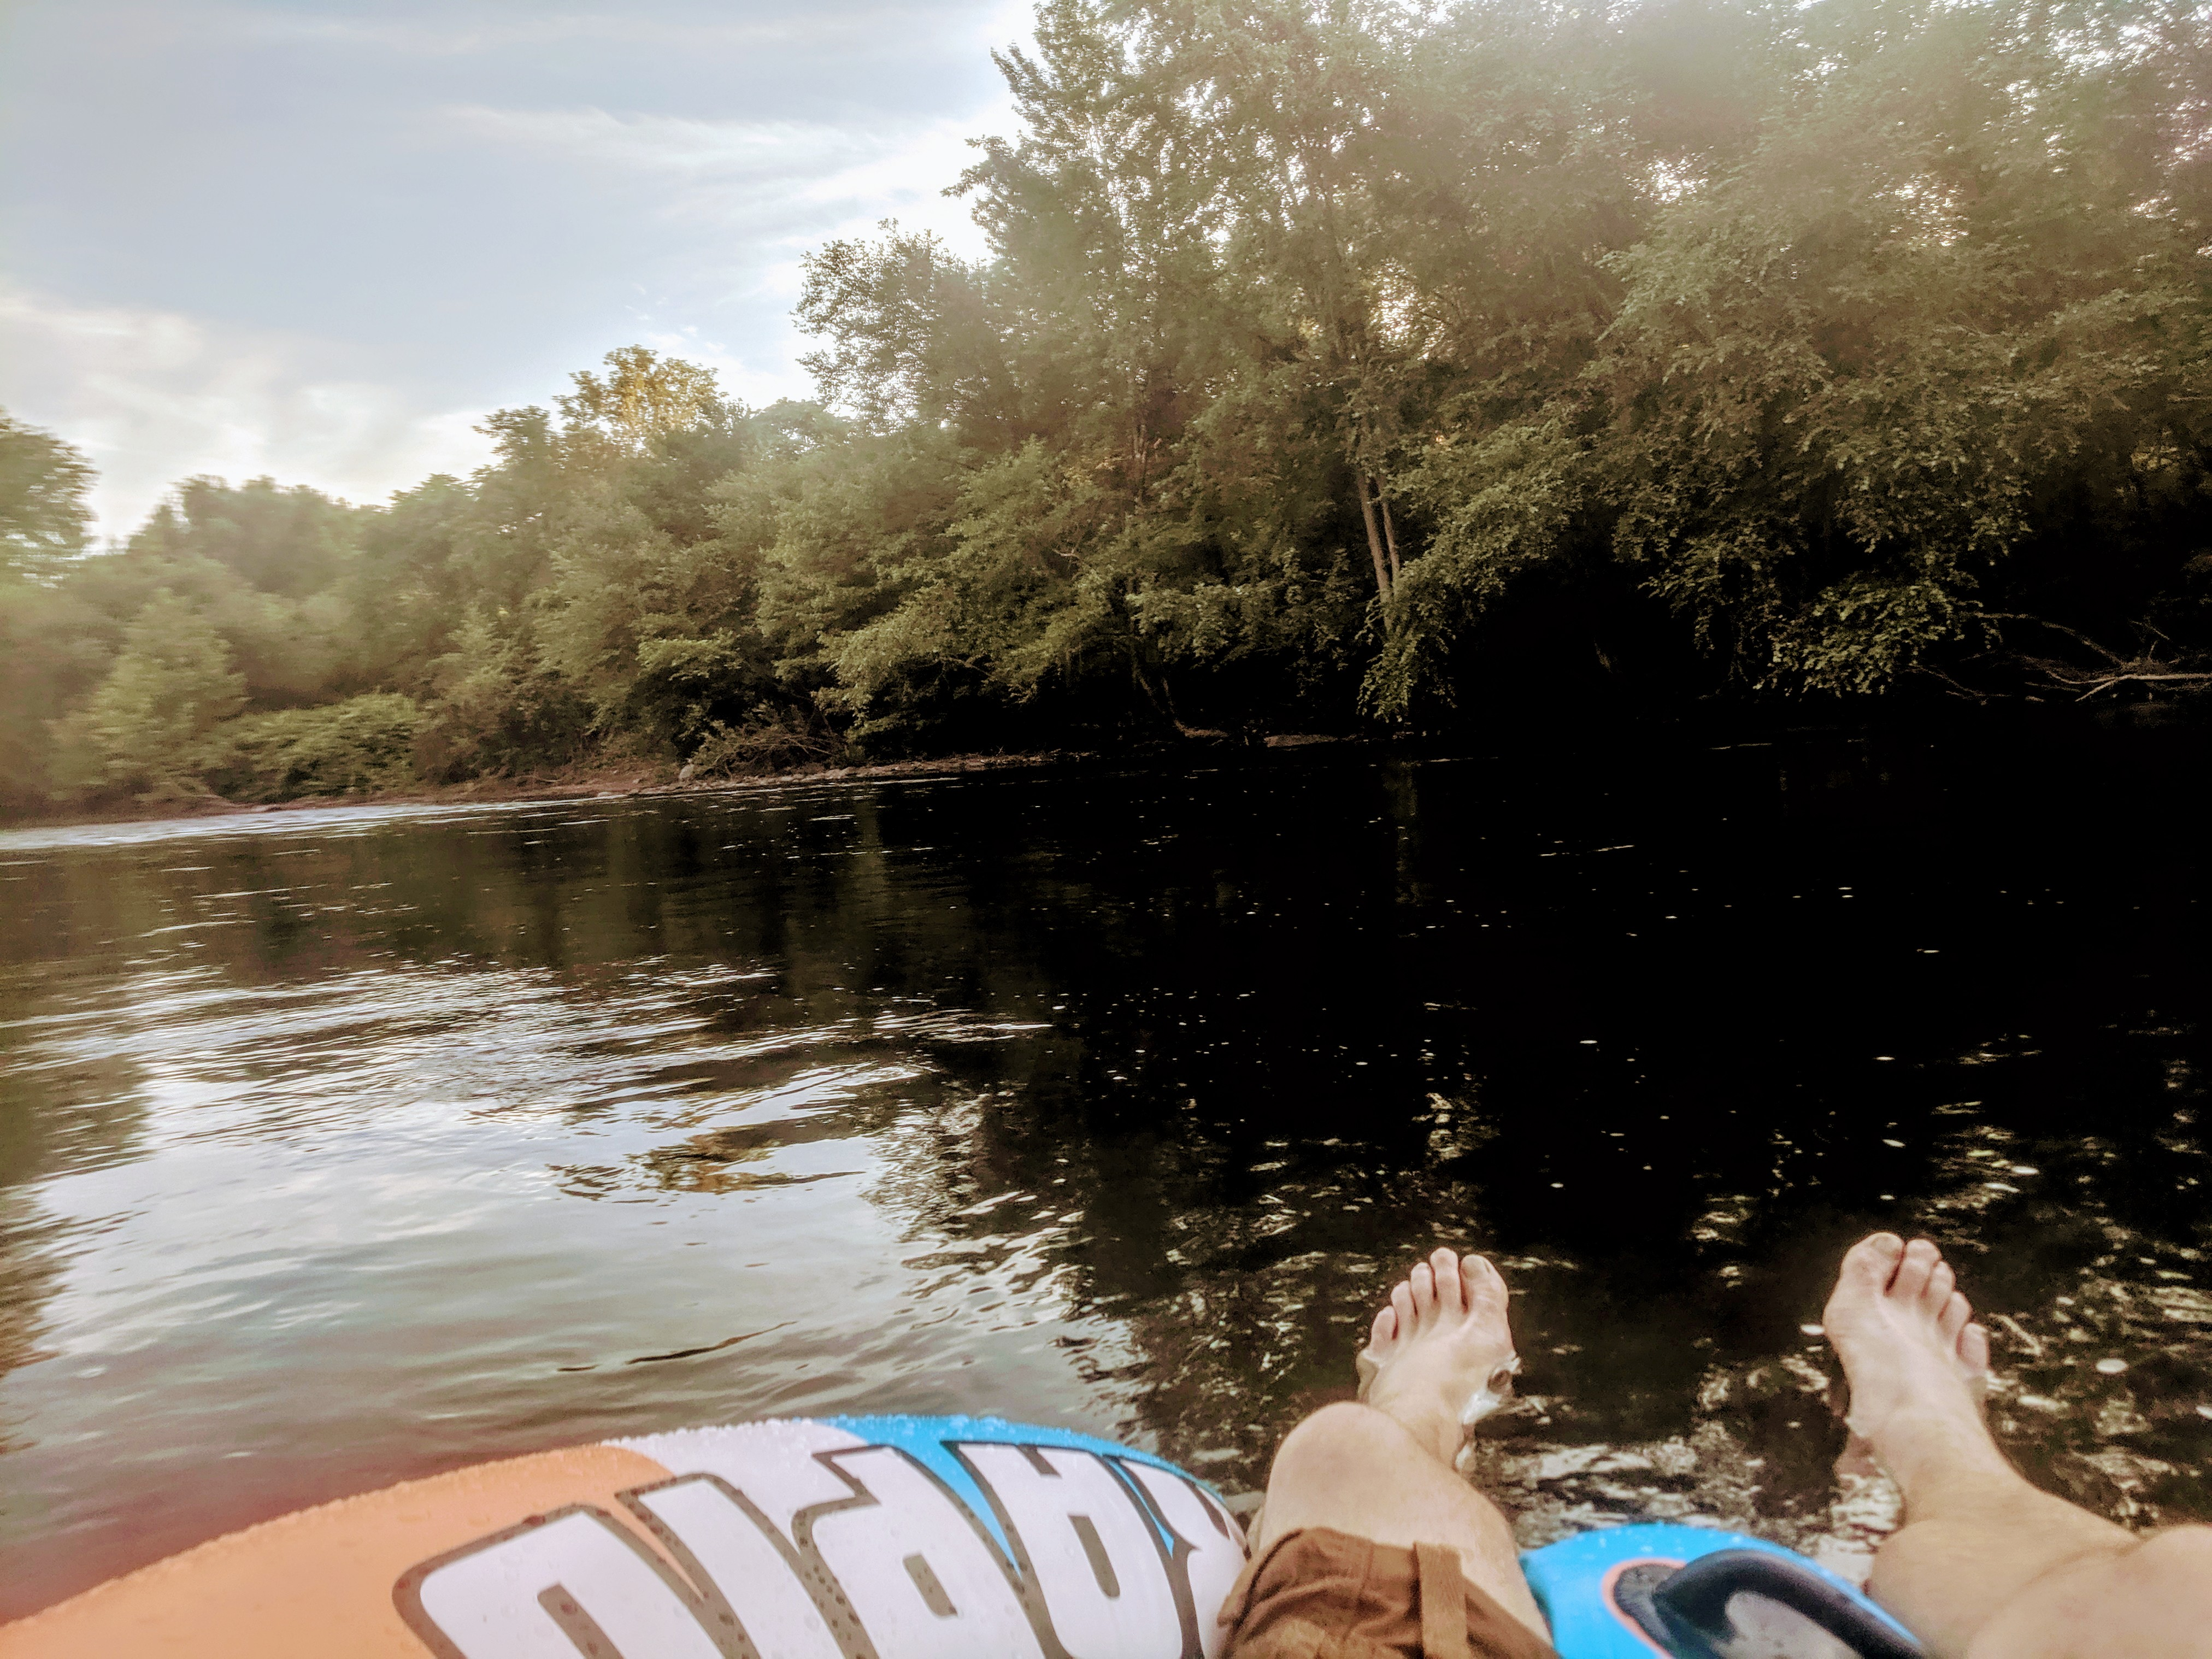 Tubing on the Lehigh River